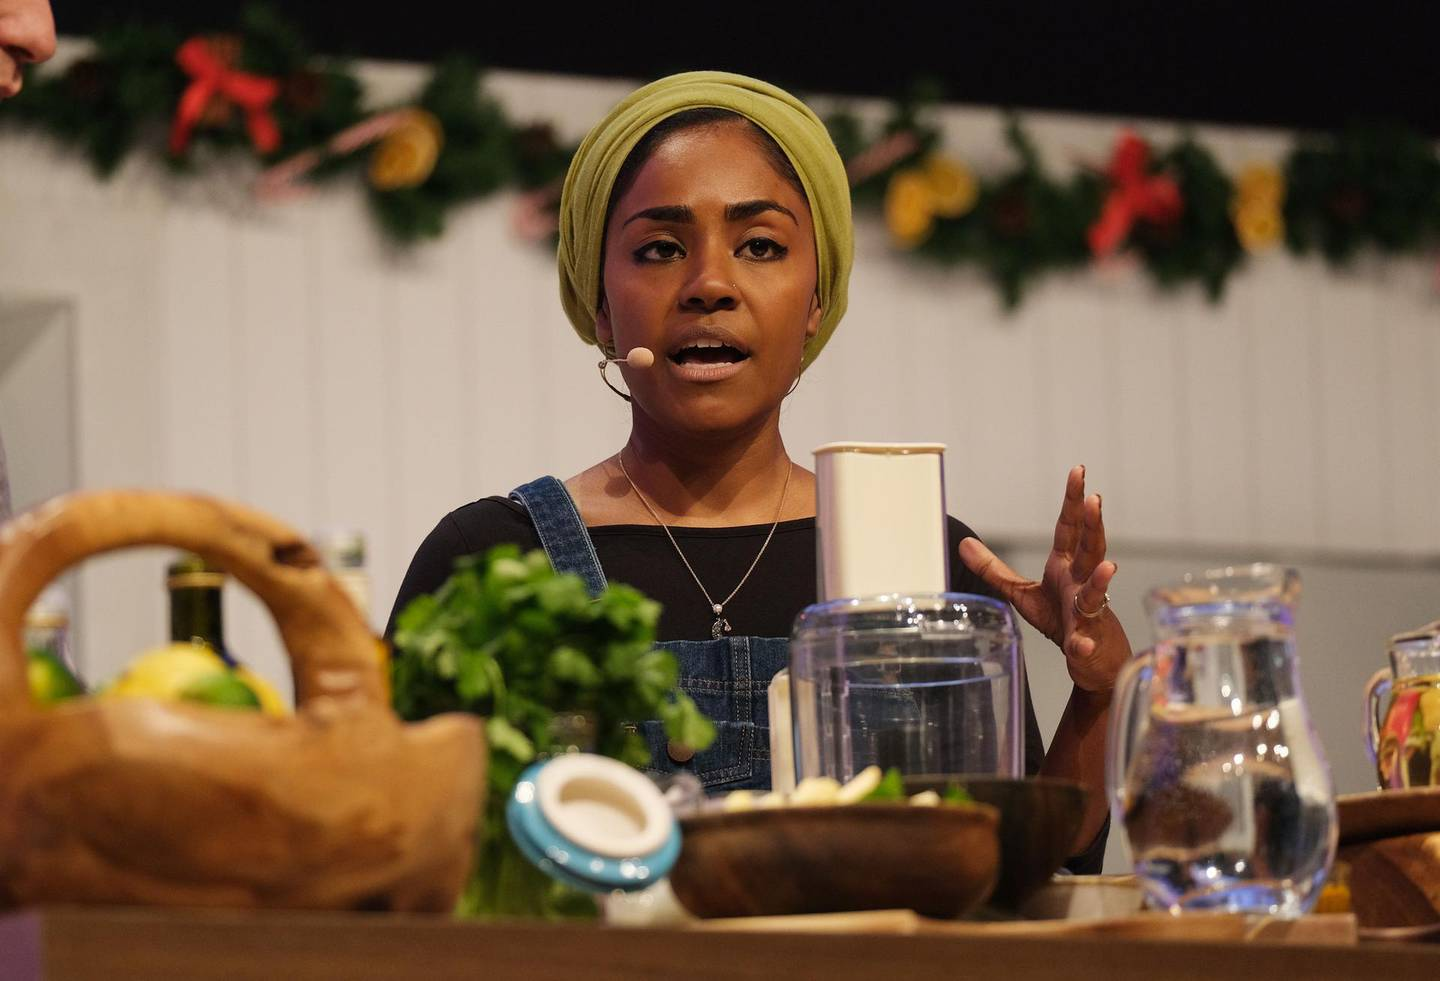 BIRMINGHAM - NOVEMBER 29: Nadiya Hussain at the BBC Good Food Show Winter 2019 held at the NEC on November 28, 2019 in England. (Photo by MelMedia/Getty Images)